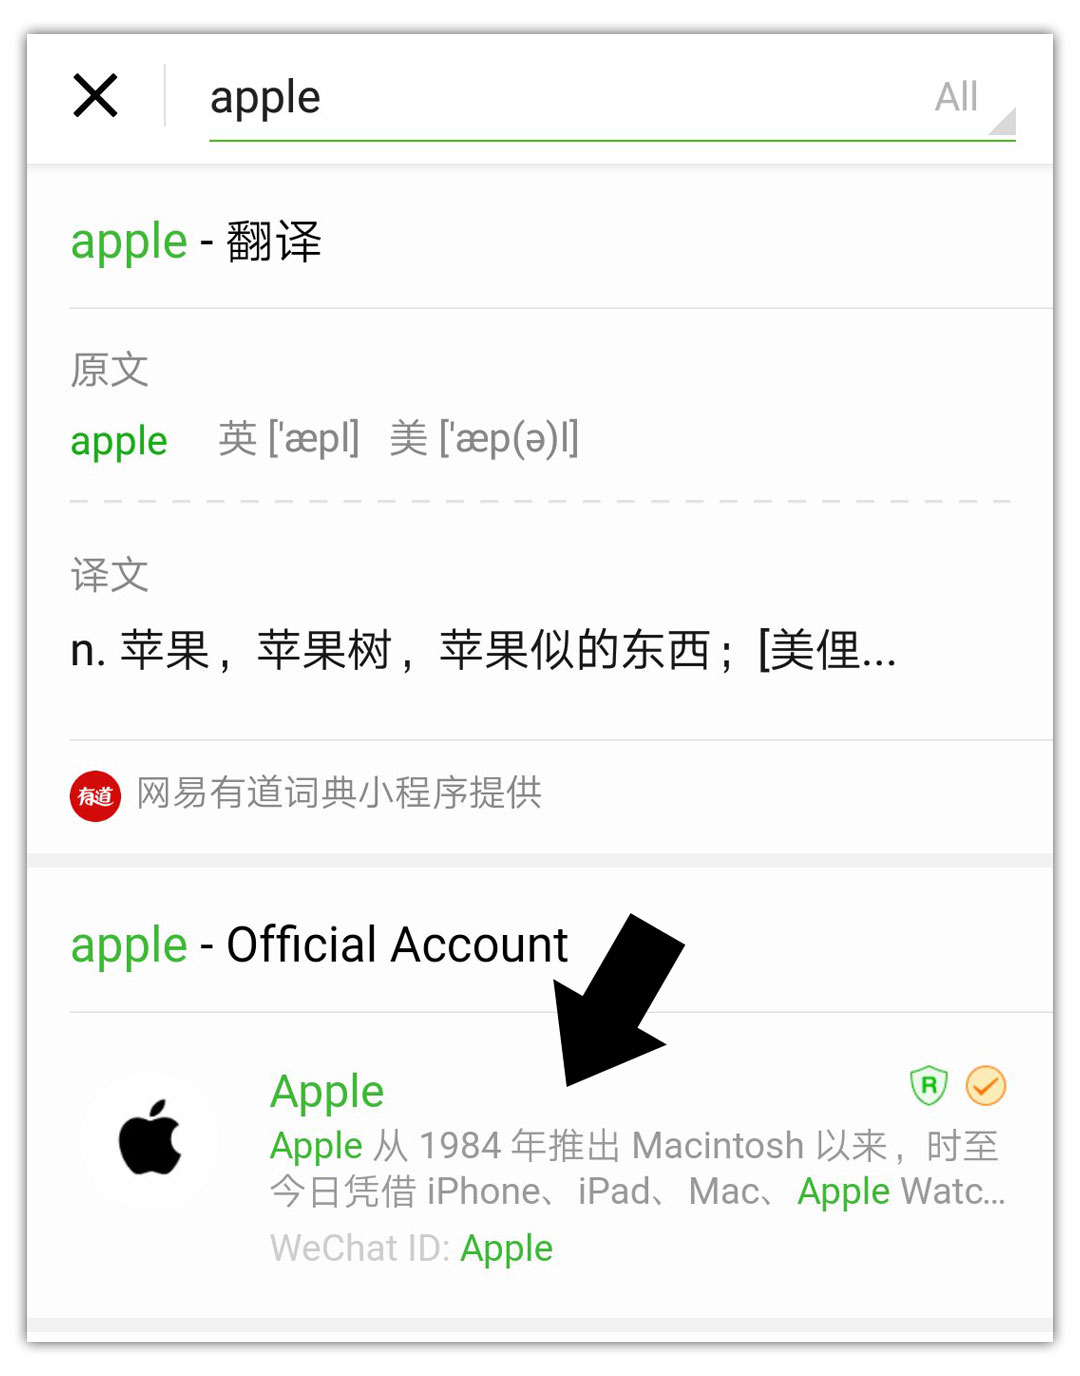 Search for Apple on WeChat